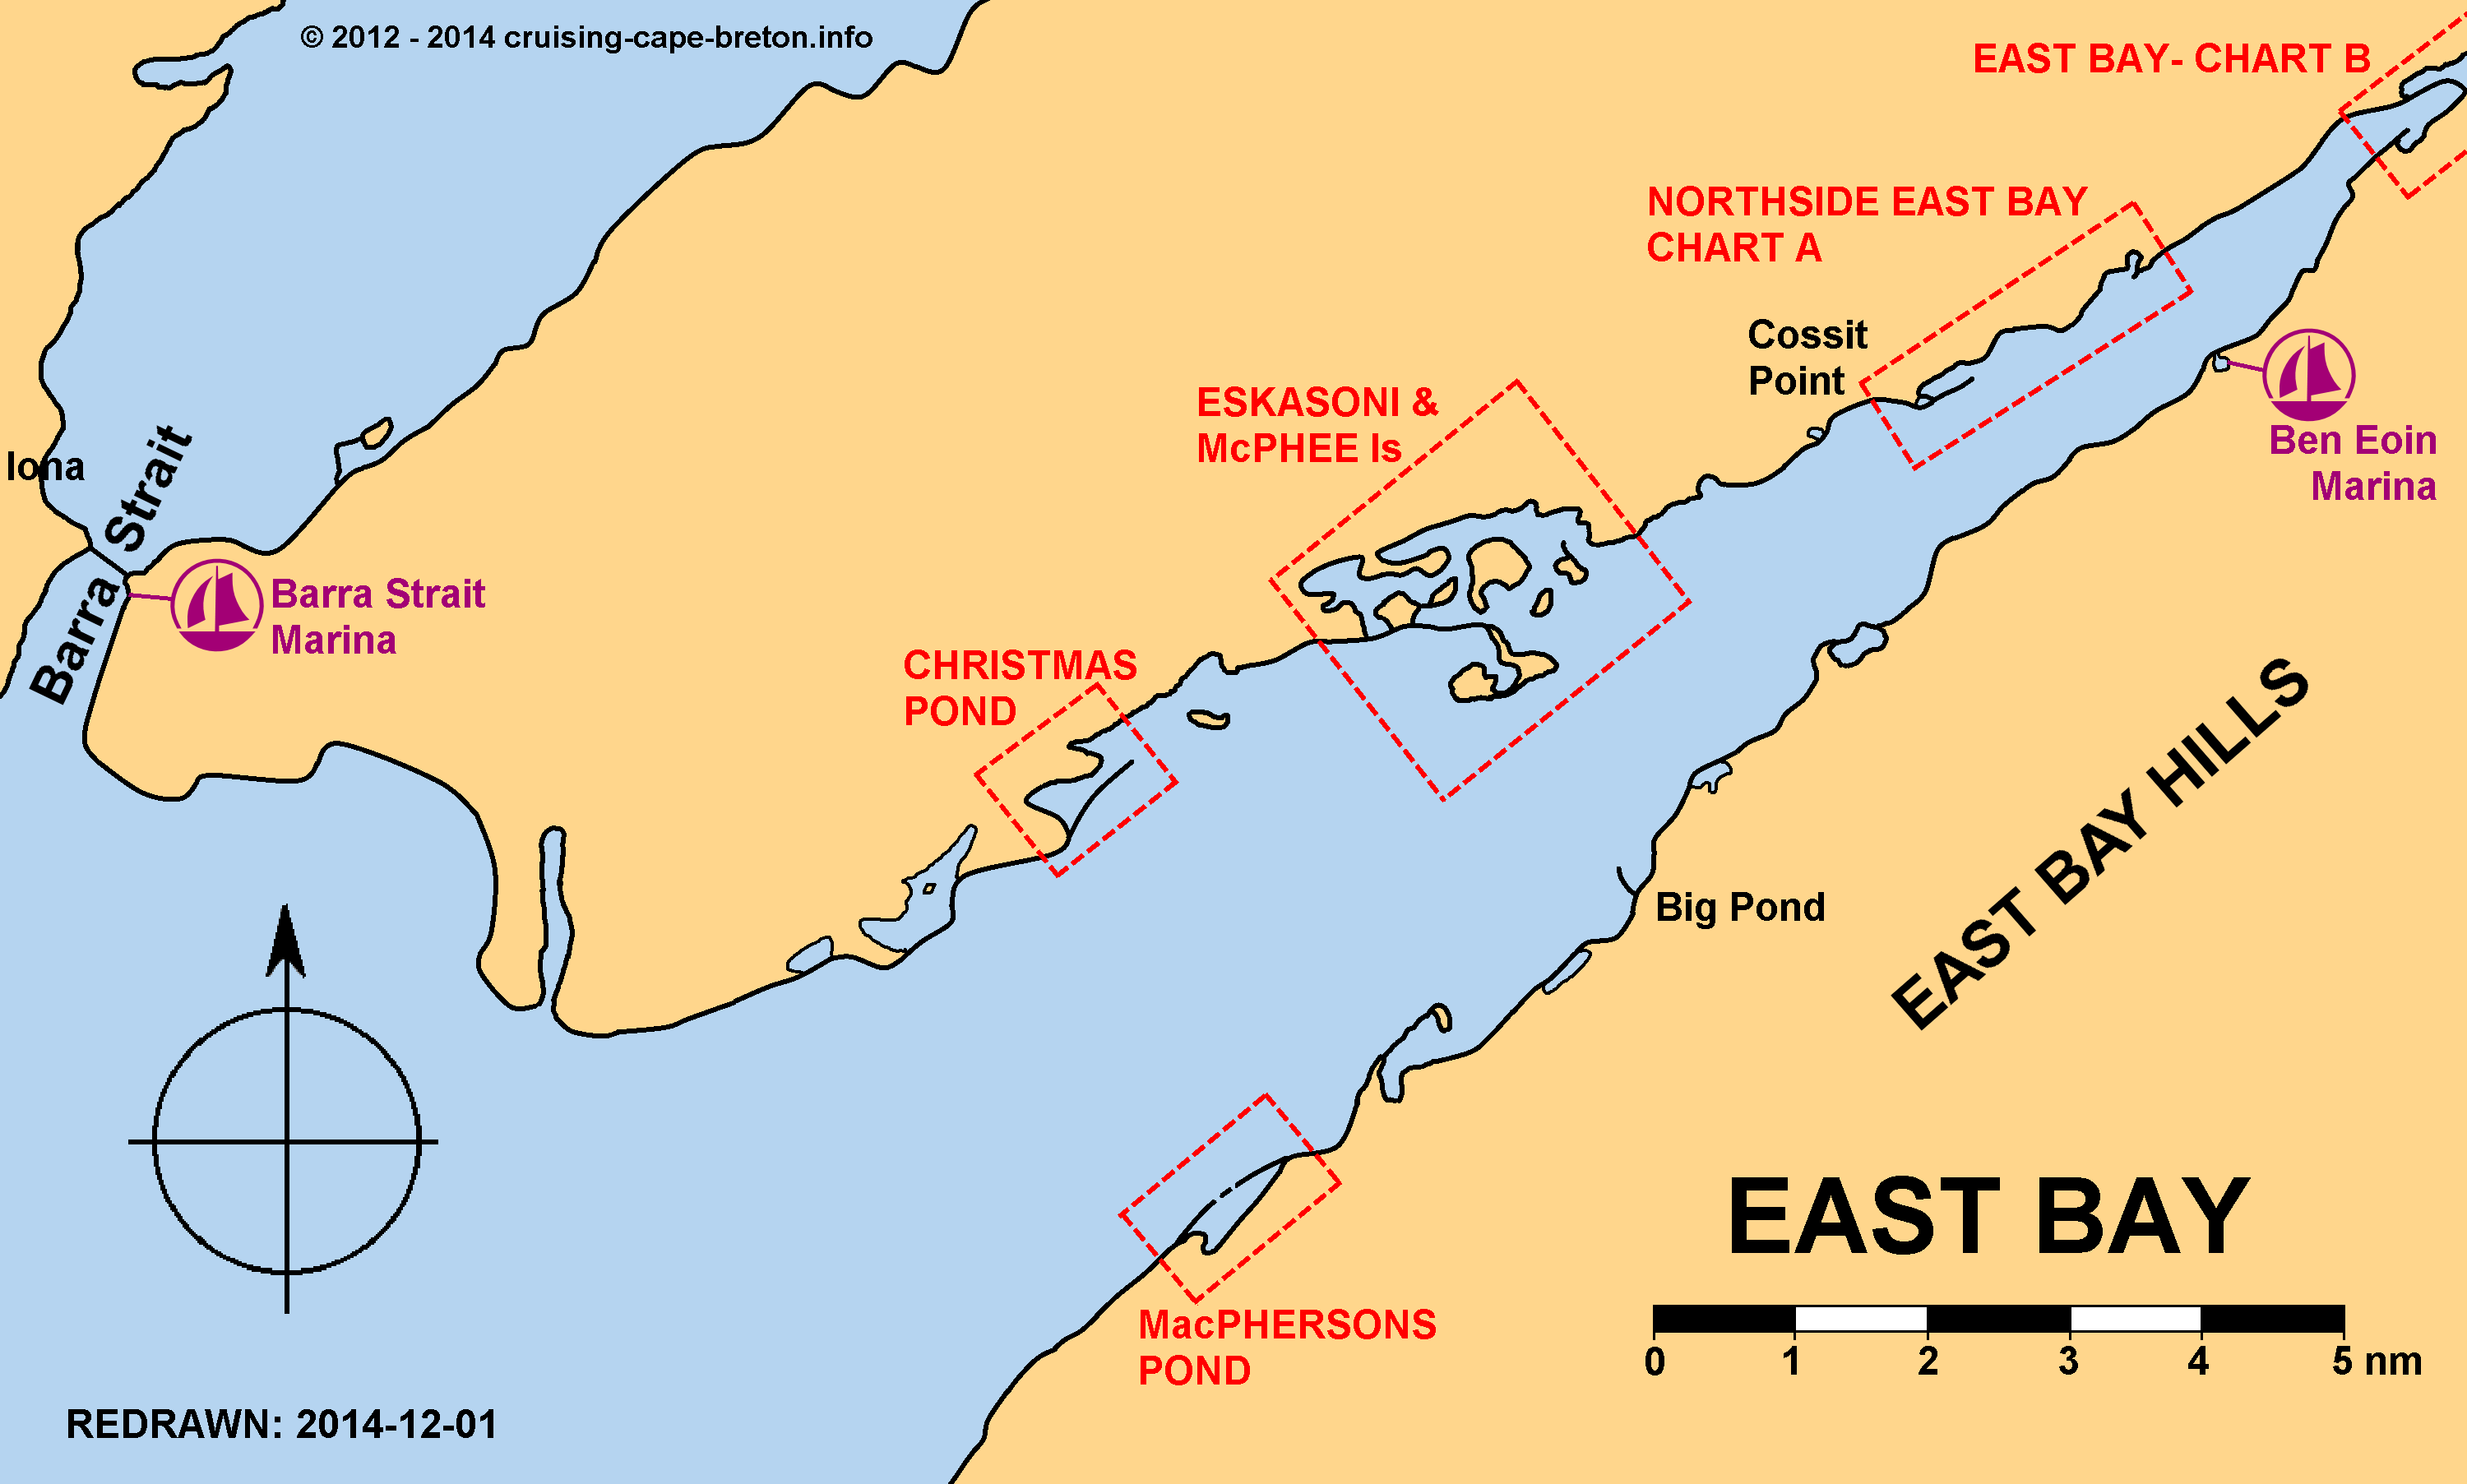 Key Chart to East Bay